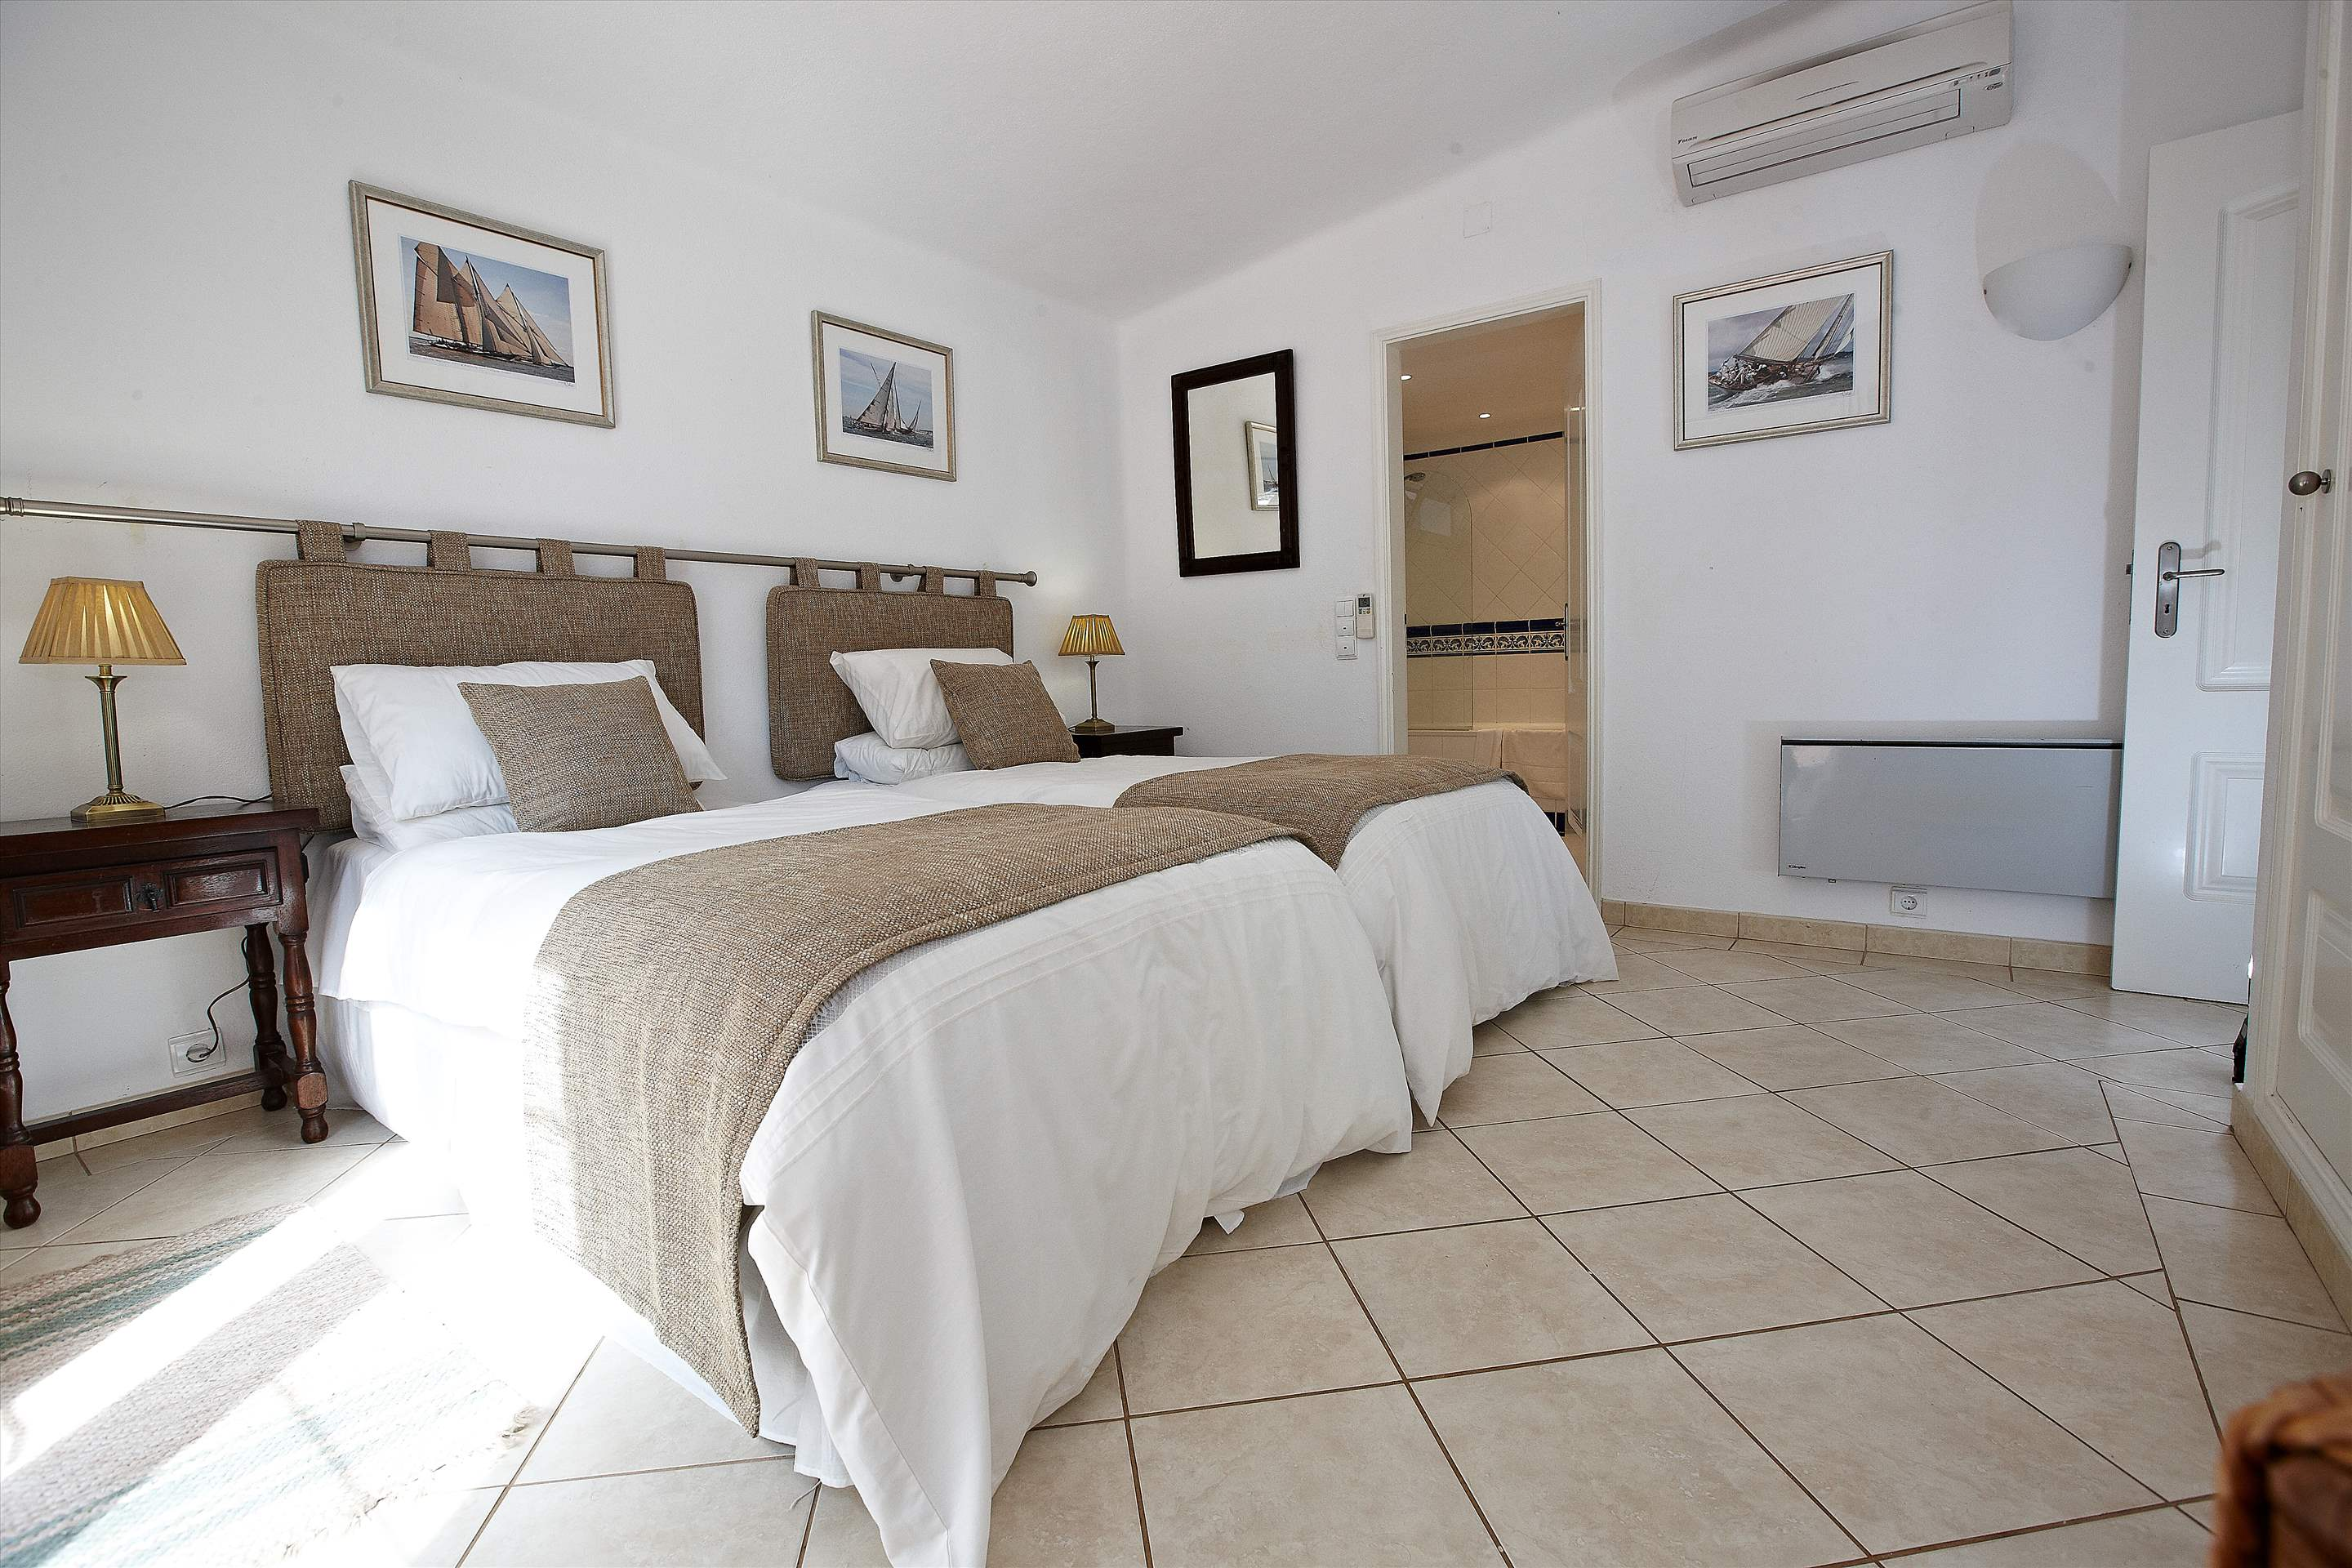 Villa Gabriella, 4 bedroom villa in Vale do Lobo, Algarve Photo #13